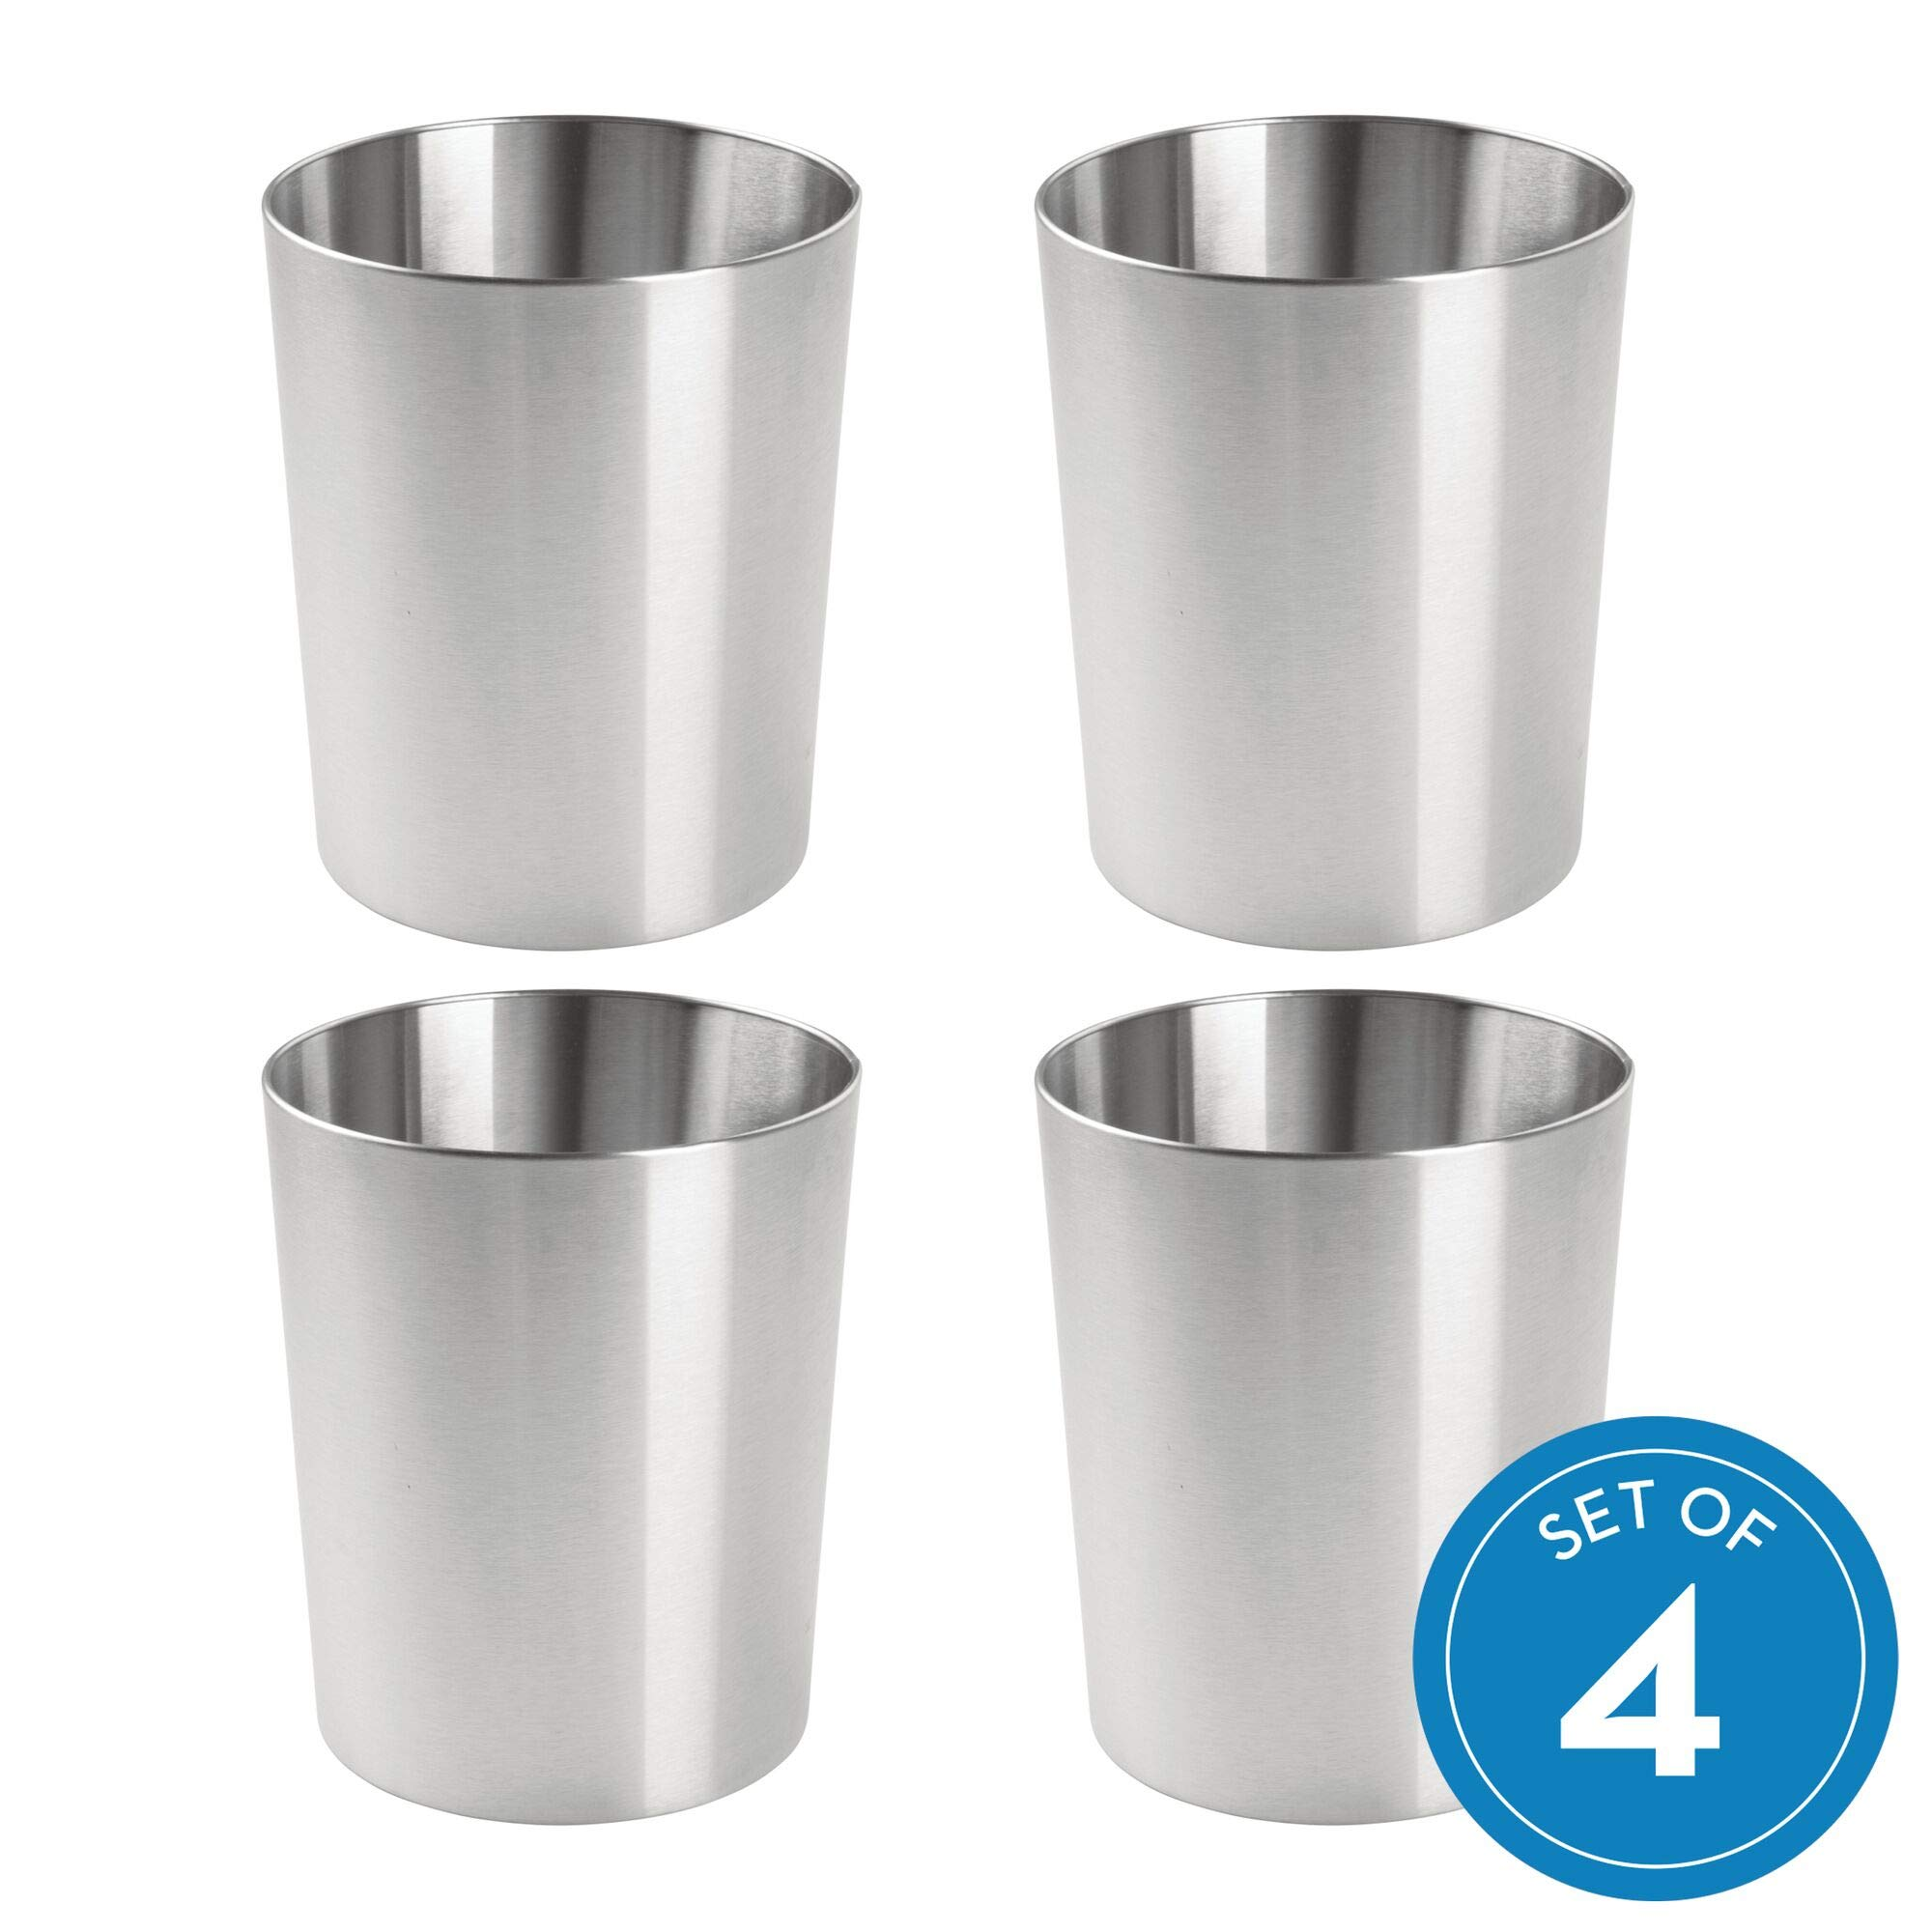 iDesign Patton Waste Can, Trash Can for Bathroom, Bedroom, Office - Brushed Stainless Steel, Pack of 4 by iDesign